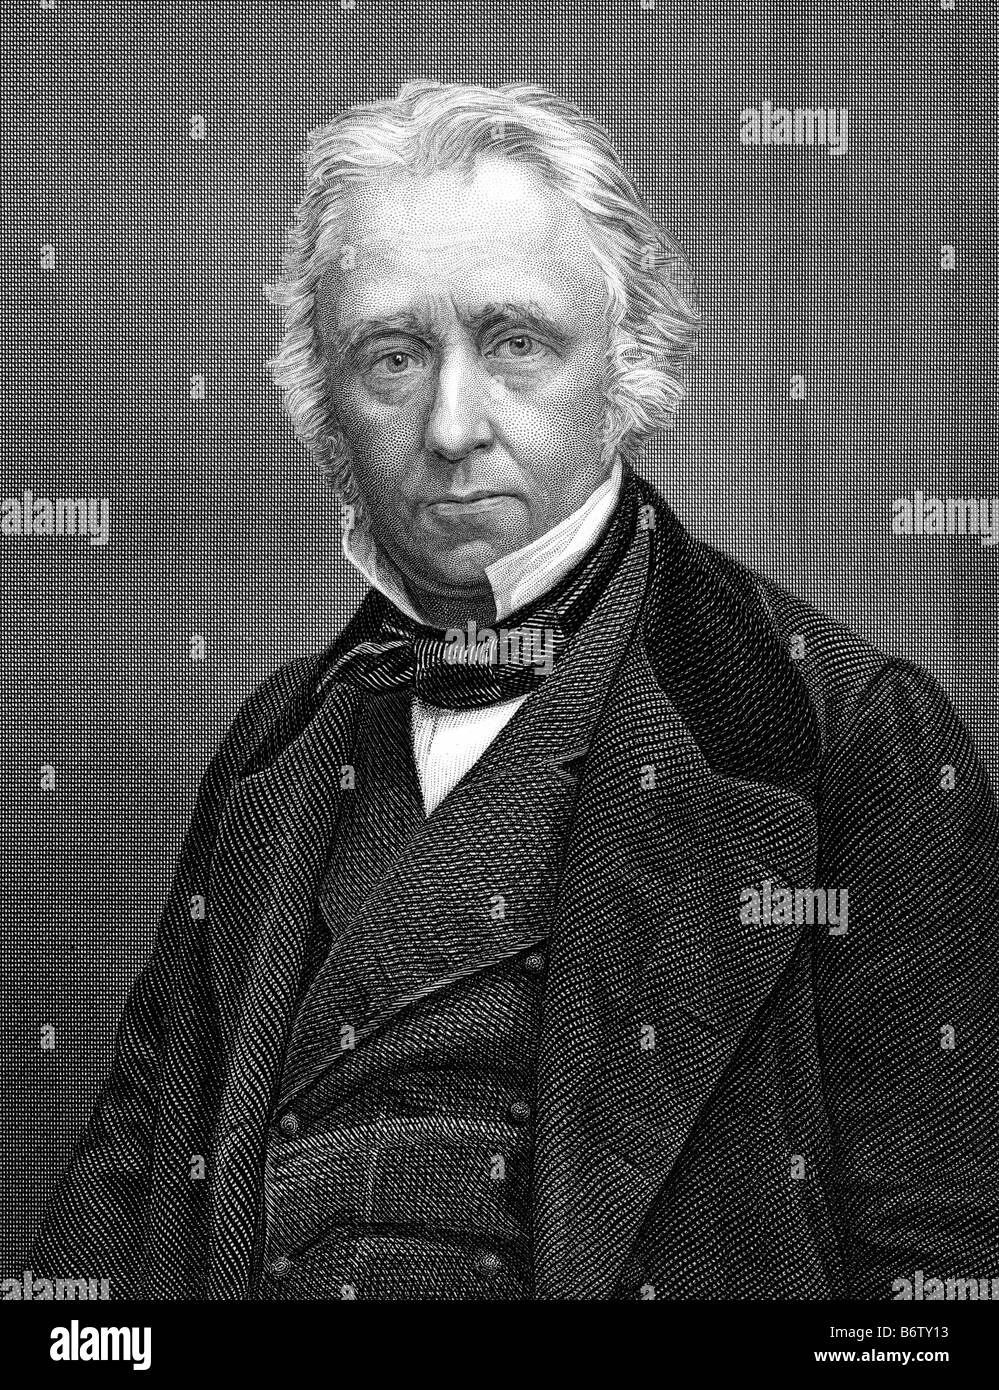 GEORGE CAMPBELL MACAULAY  English Classical historian 1852-1915 - Stock Image